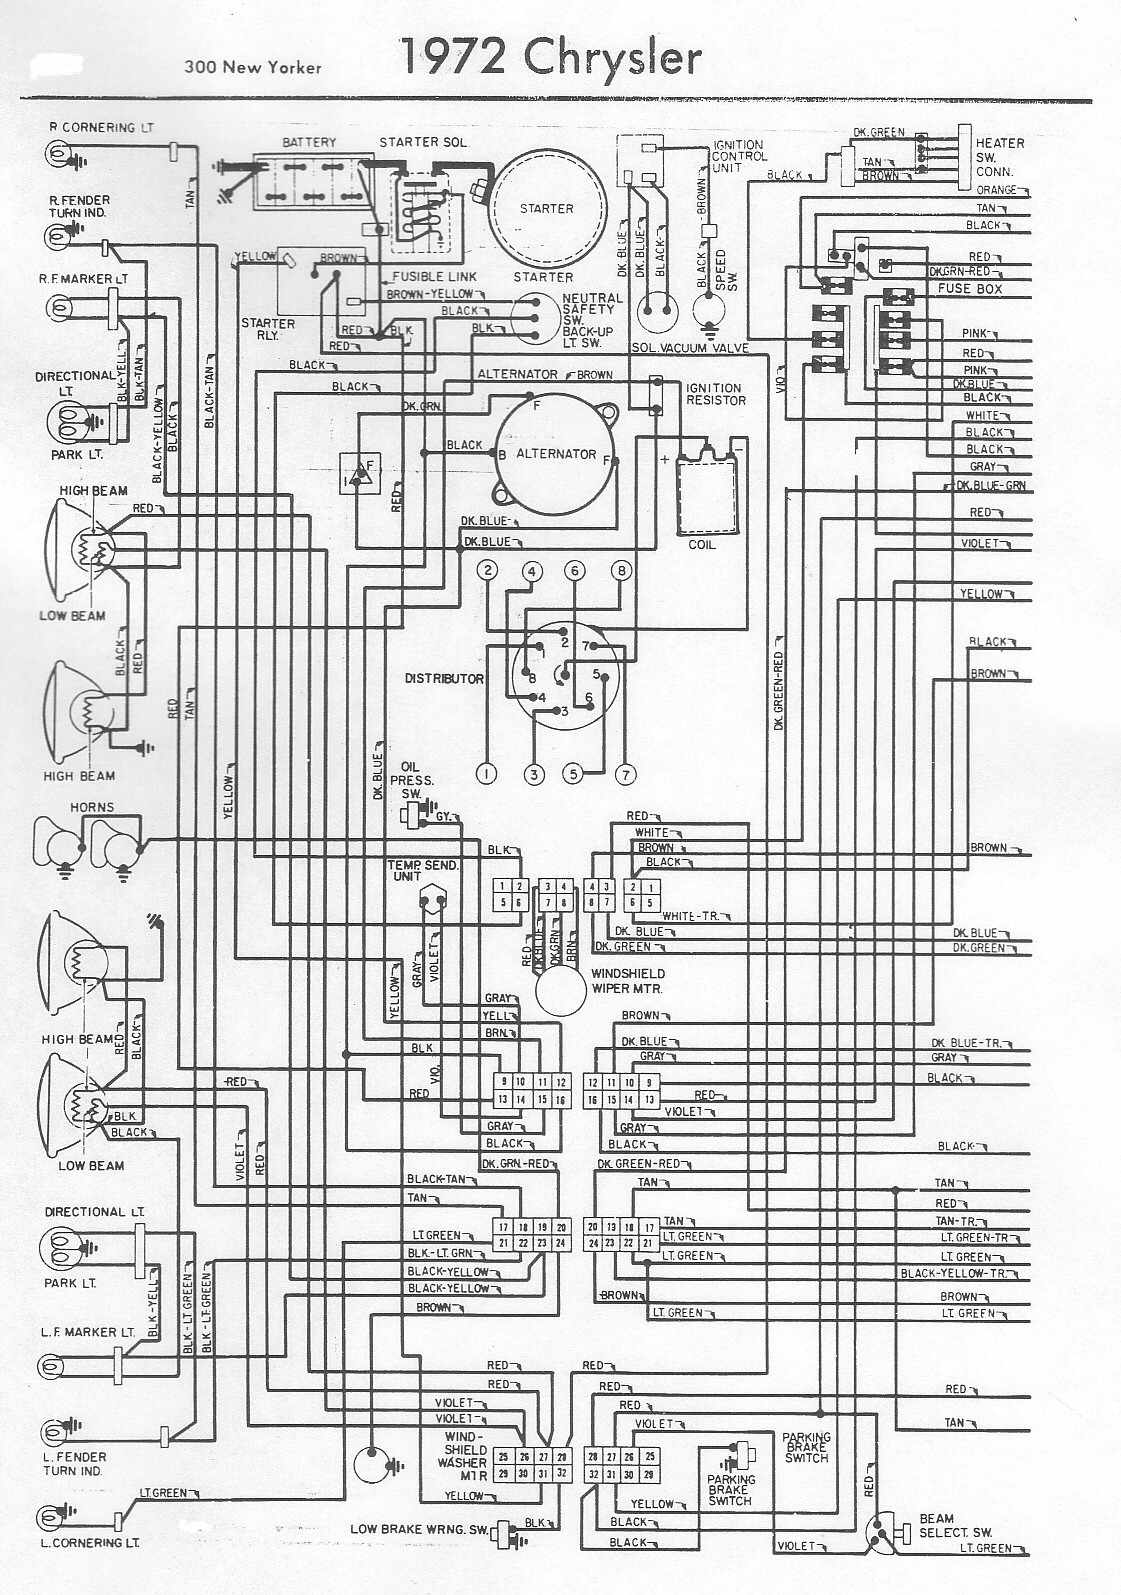 Chrysler Car Manuals Wiring Diagrams Pdf Fault Codes 1972 Bmw 2002 Diagram Schematic Download